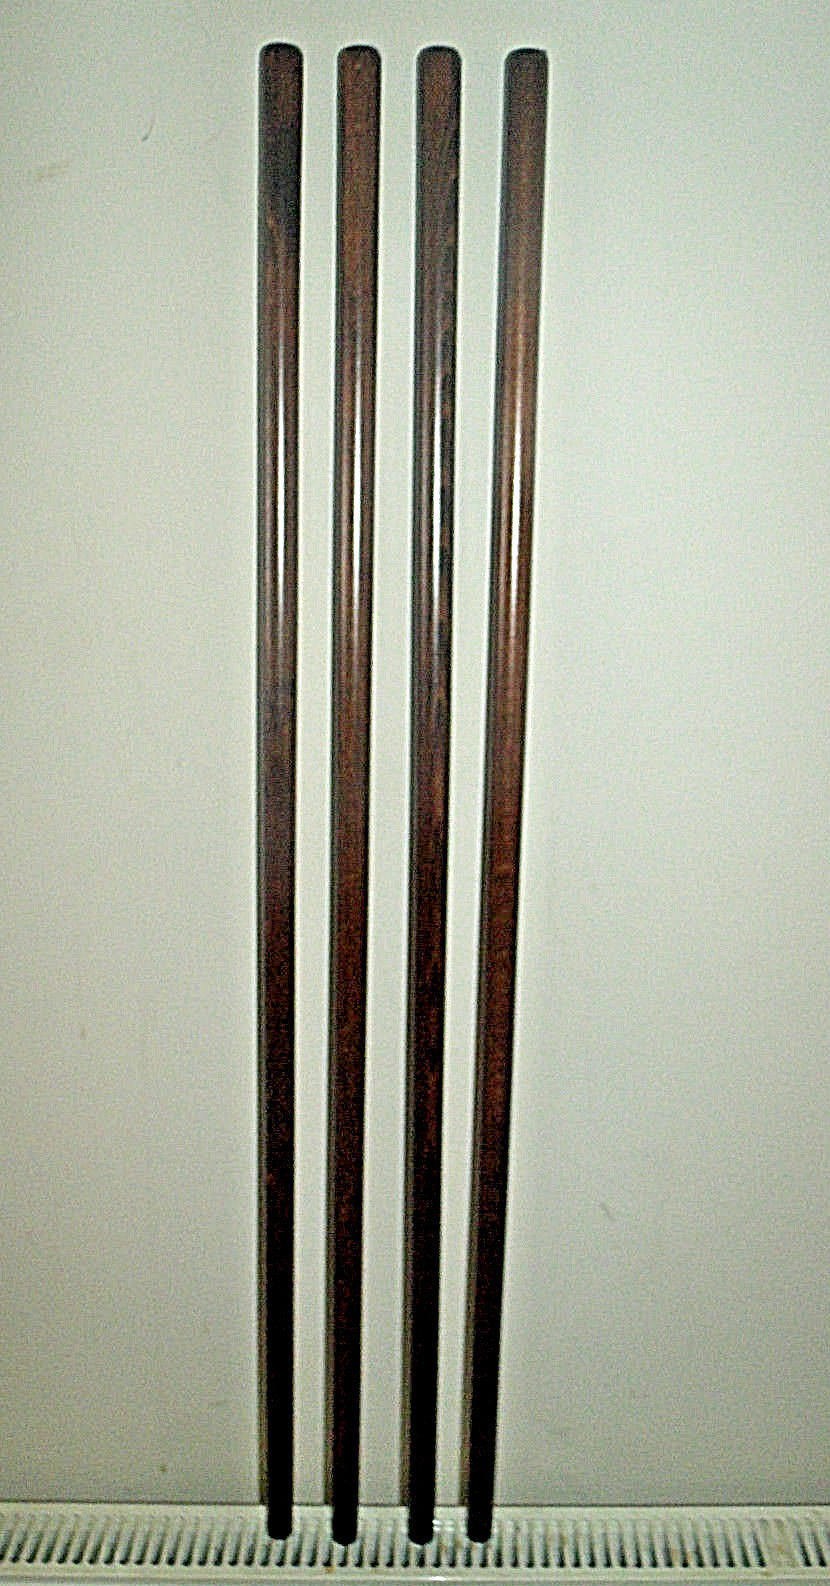 Dark Brown Shaft for Walking Stick Making Beech Wood Parts Accessories Canes x1